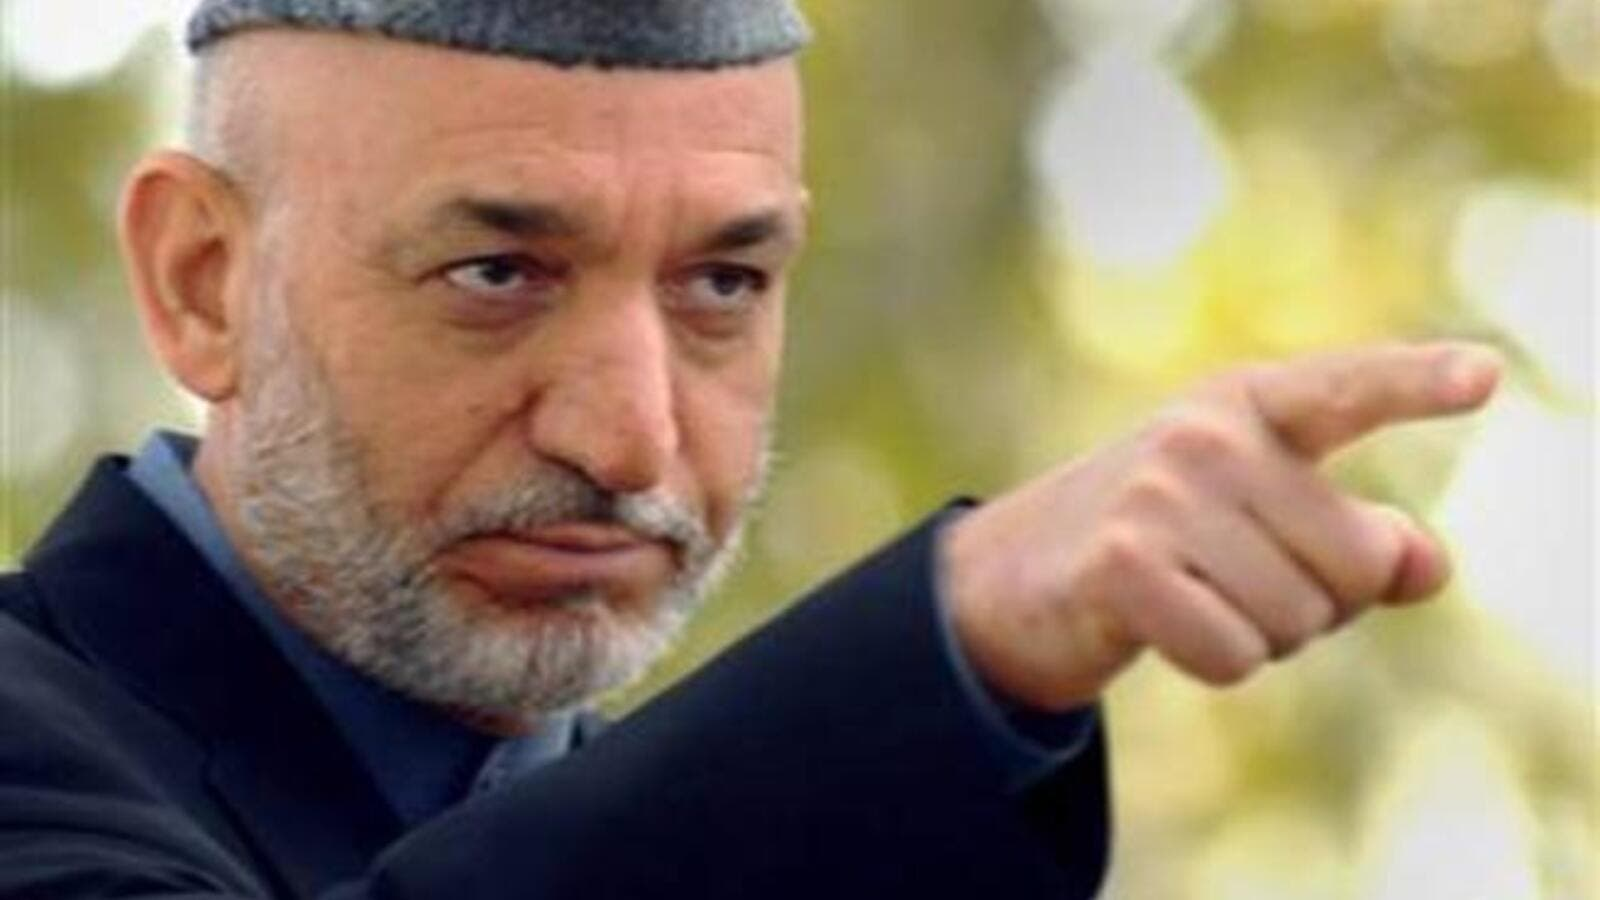 Afghani President Karzai points to the West whenever things go wrong in his country. Could he be right?